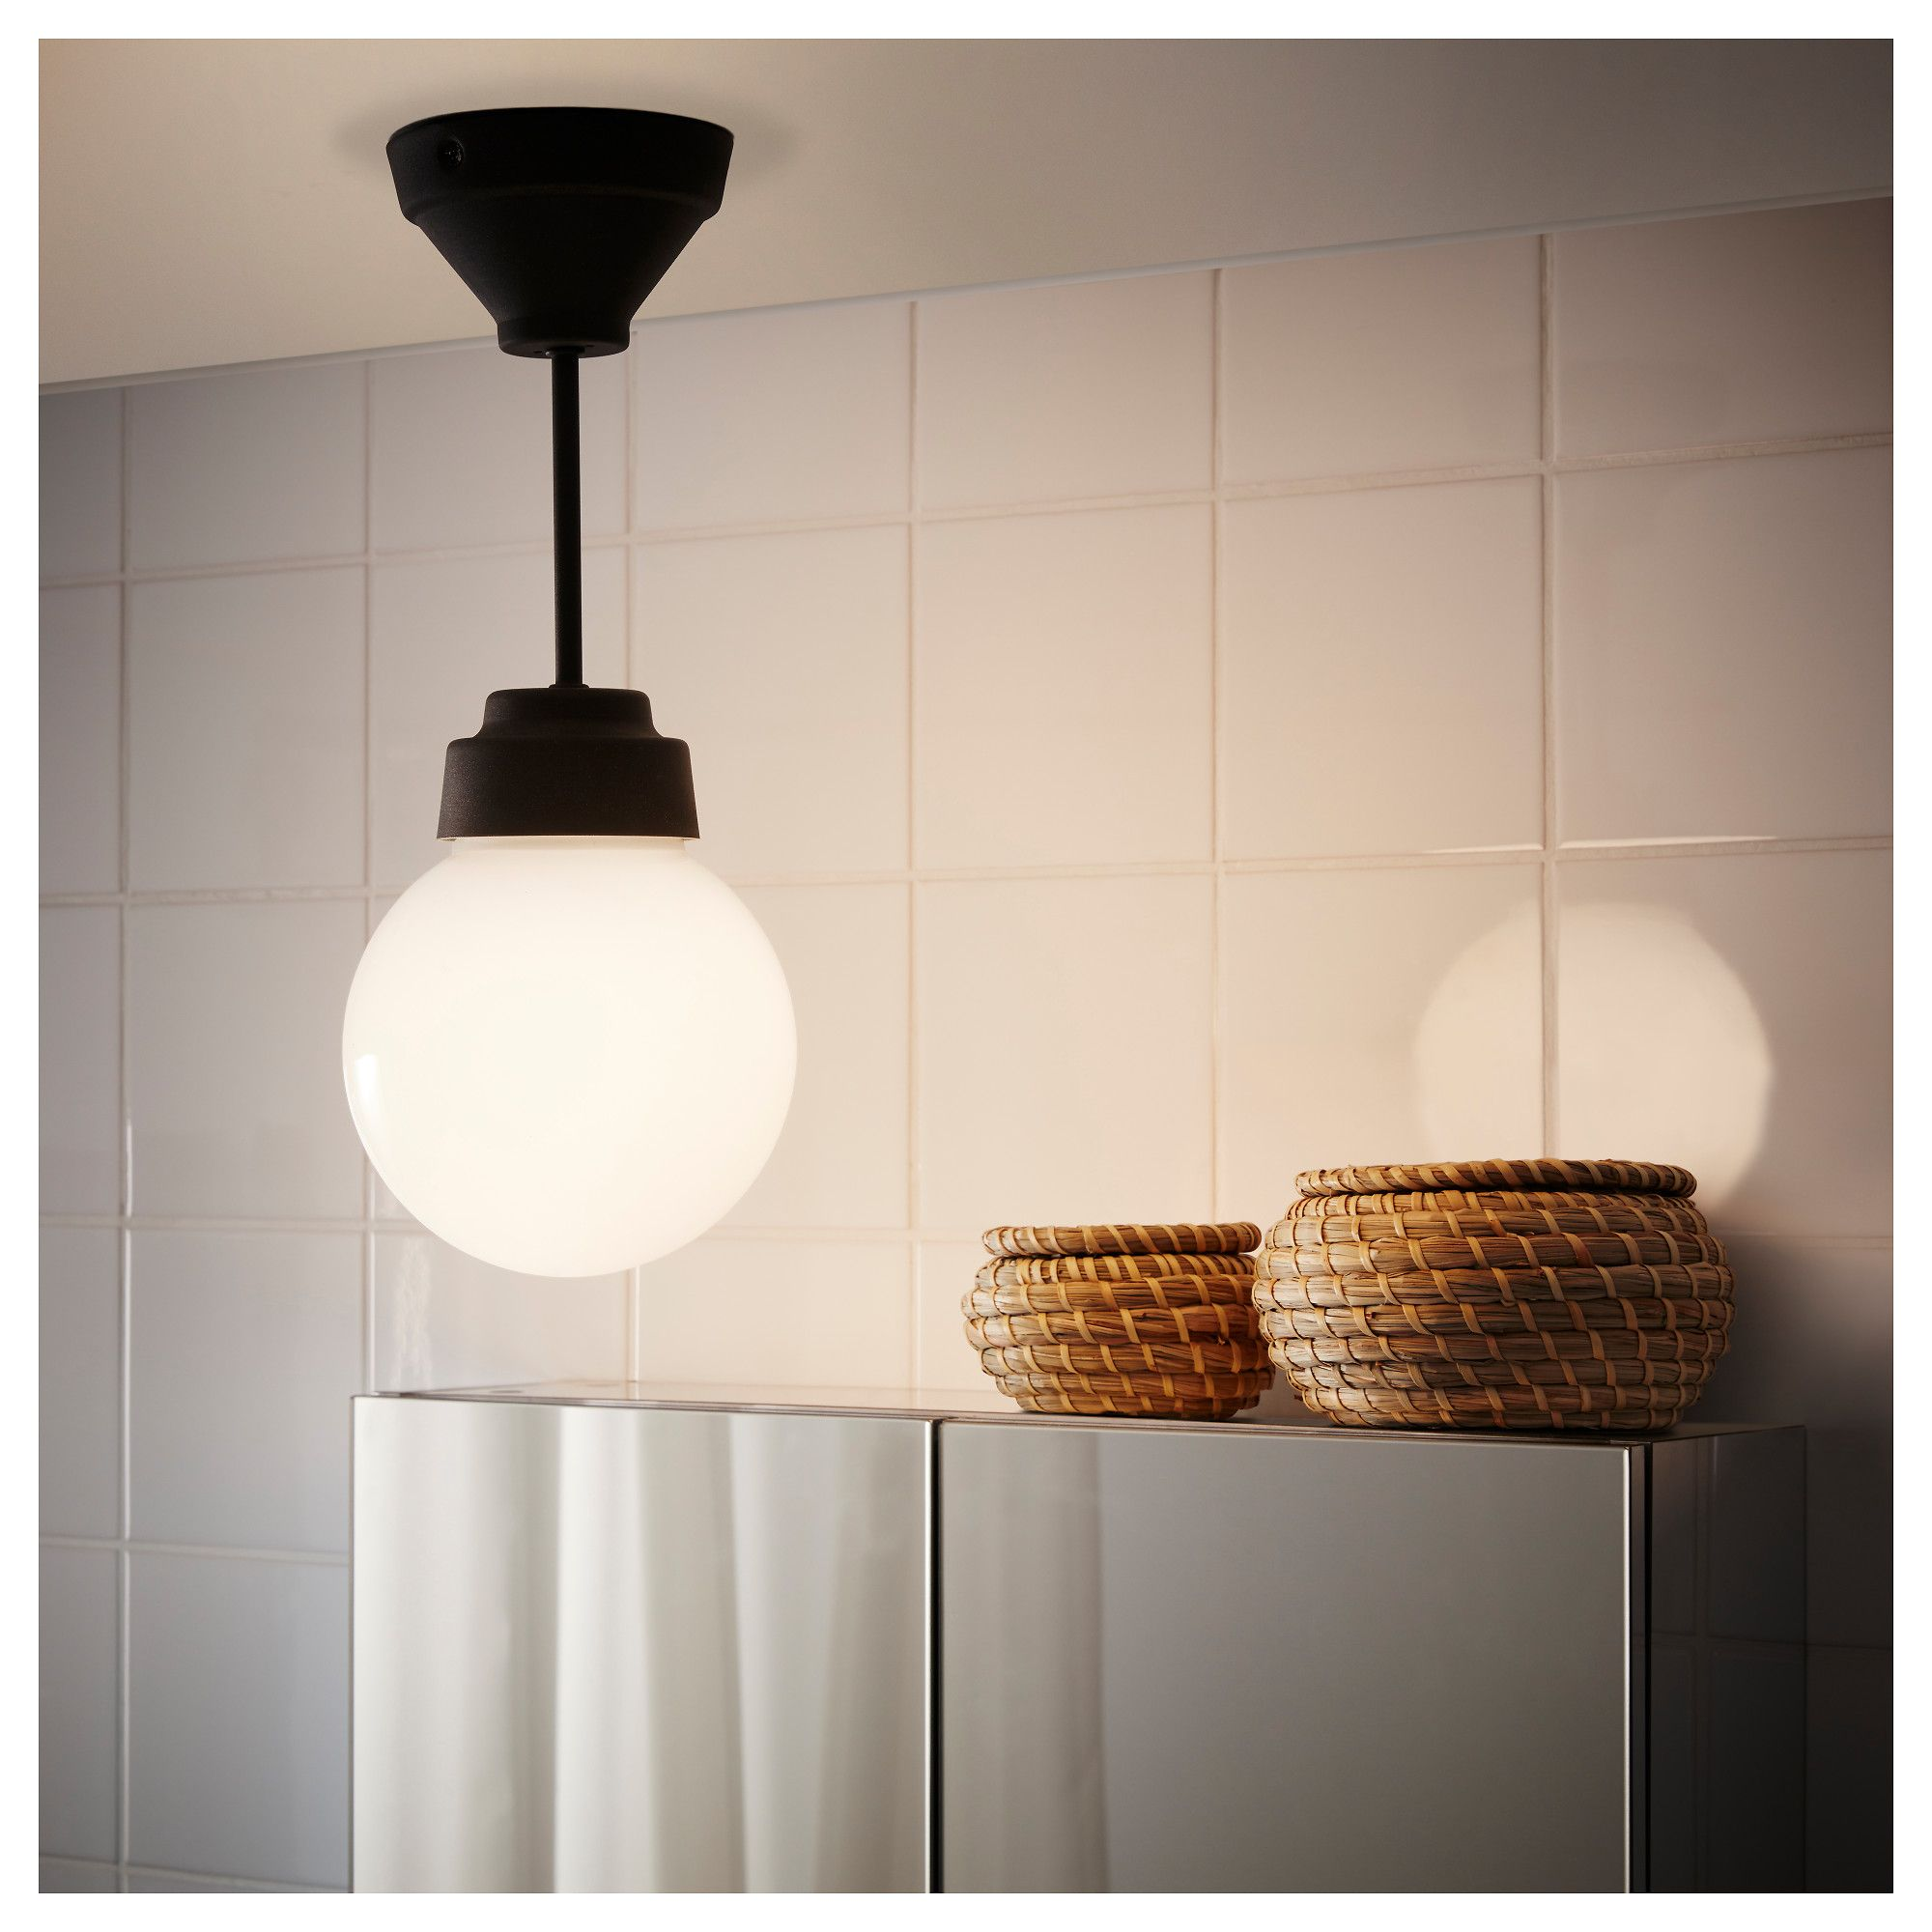 High Quality IKEA VITEMÖLLA Ceiling Lamp Metal/glass Gives A Diffused Light; Good For  Spreading Light Into Larger Areas Of A Bathroom.